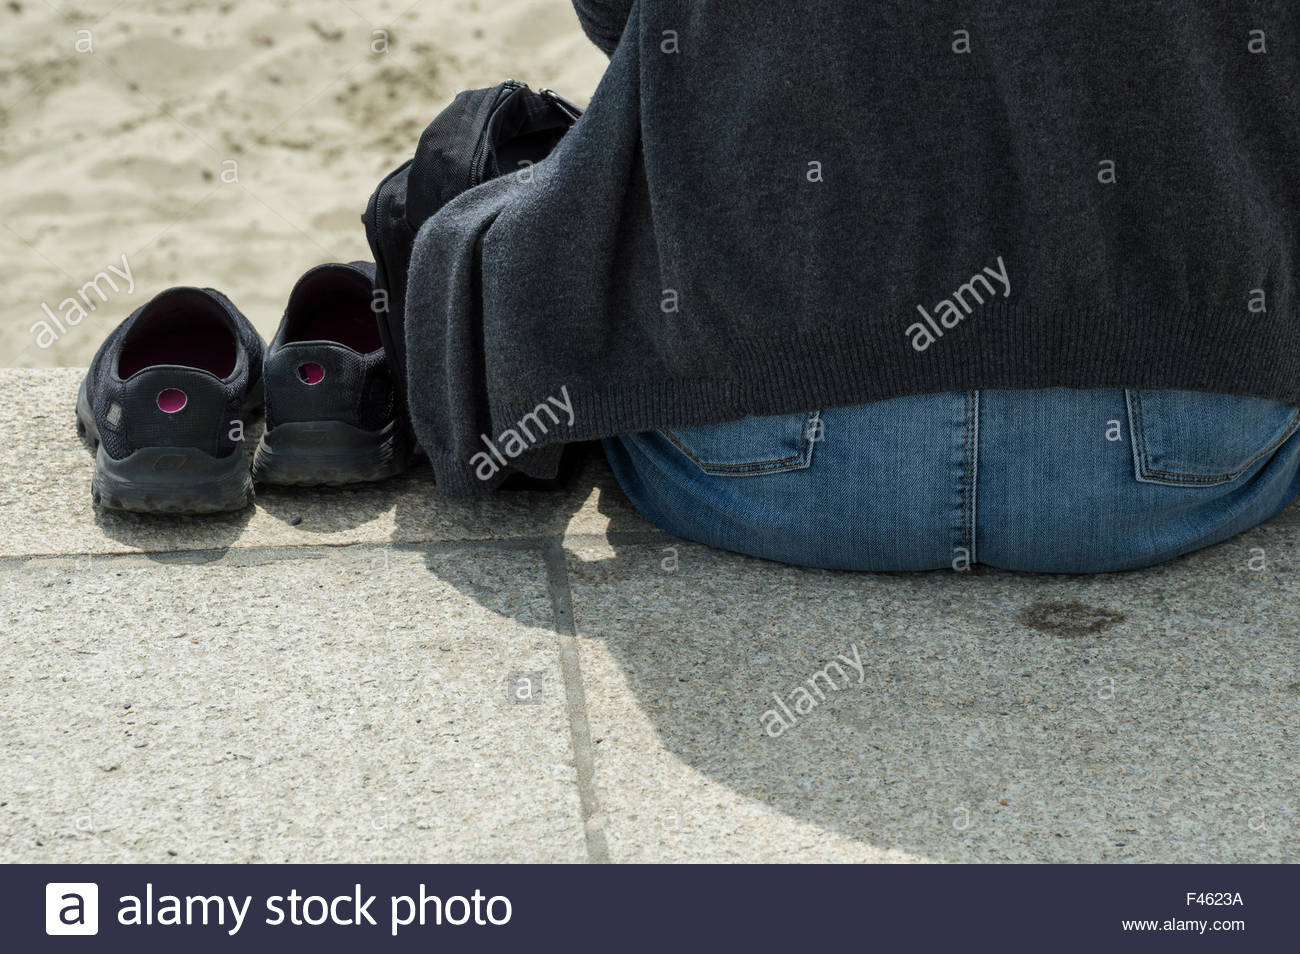 Woman sitting by the beach with her shoes next to her - Stock Image